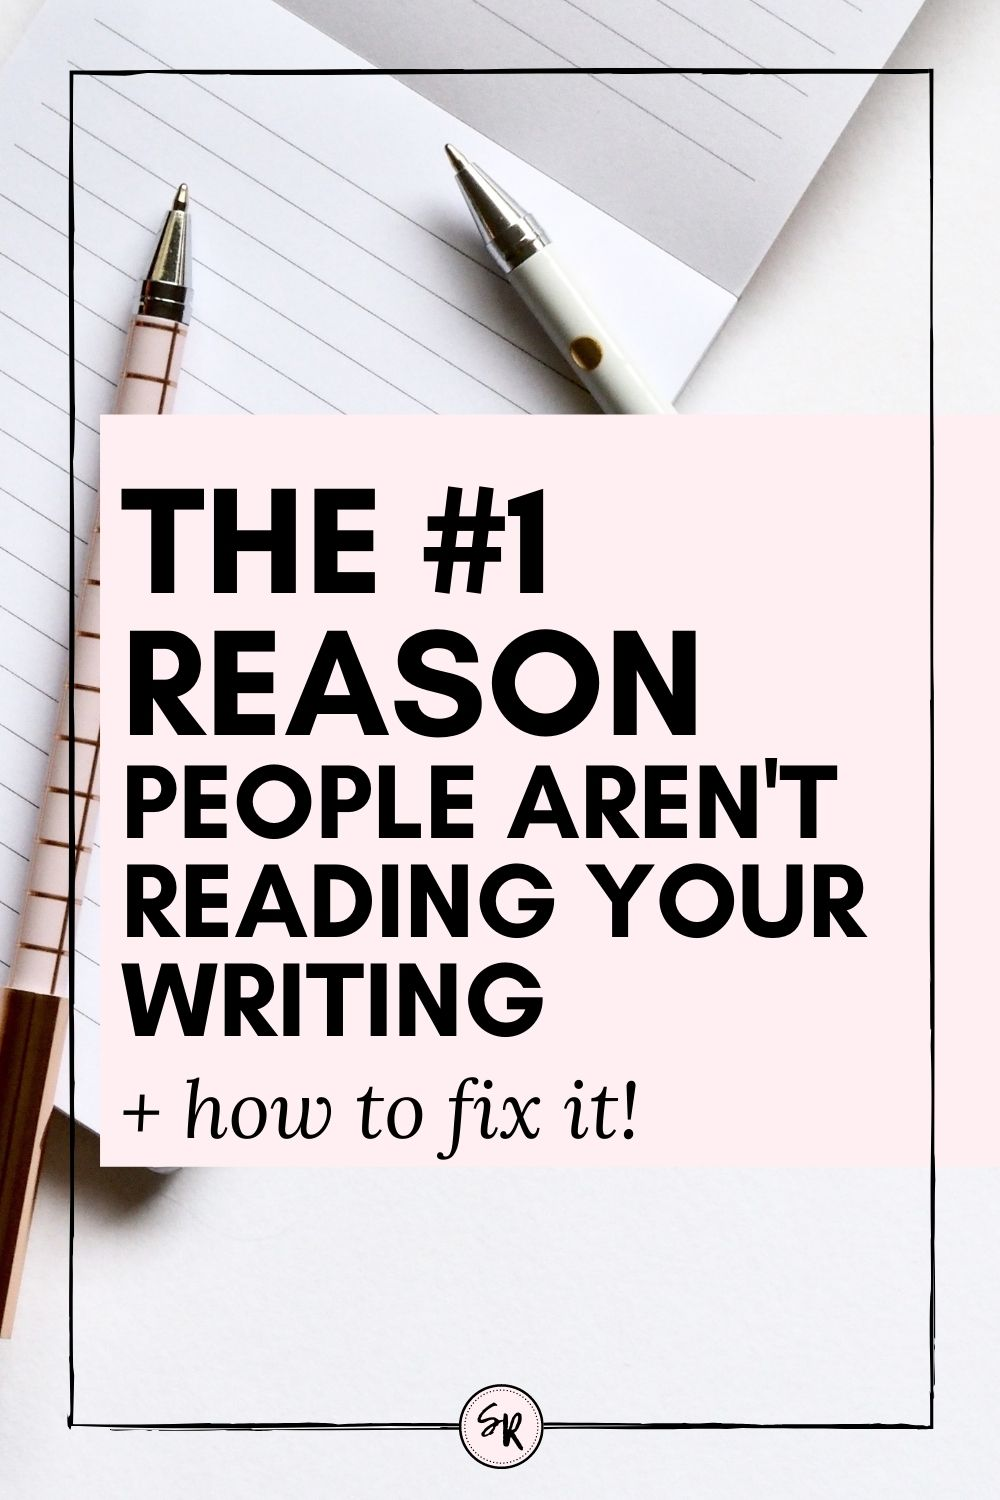 THE #1 REASON PEOPLE AREN'T READING YOUR WRITING (+ HOW TO FIX IT!) | ShellyRawlings.com